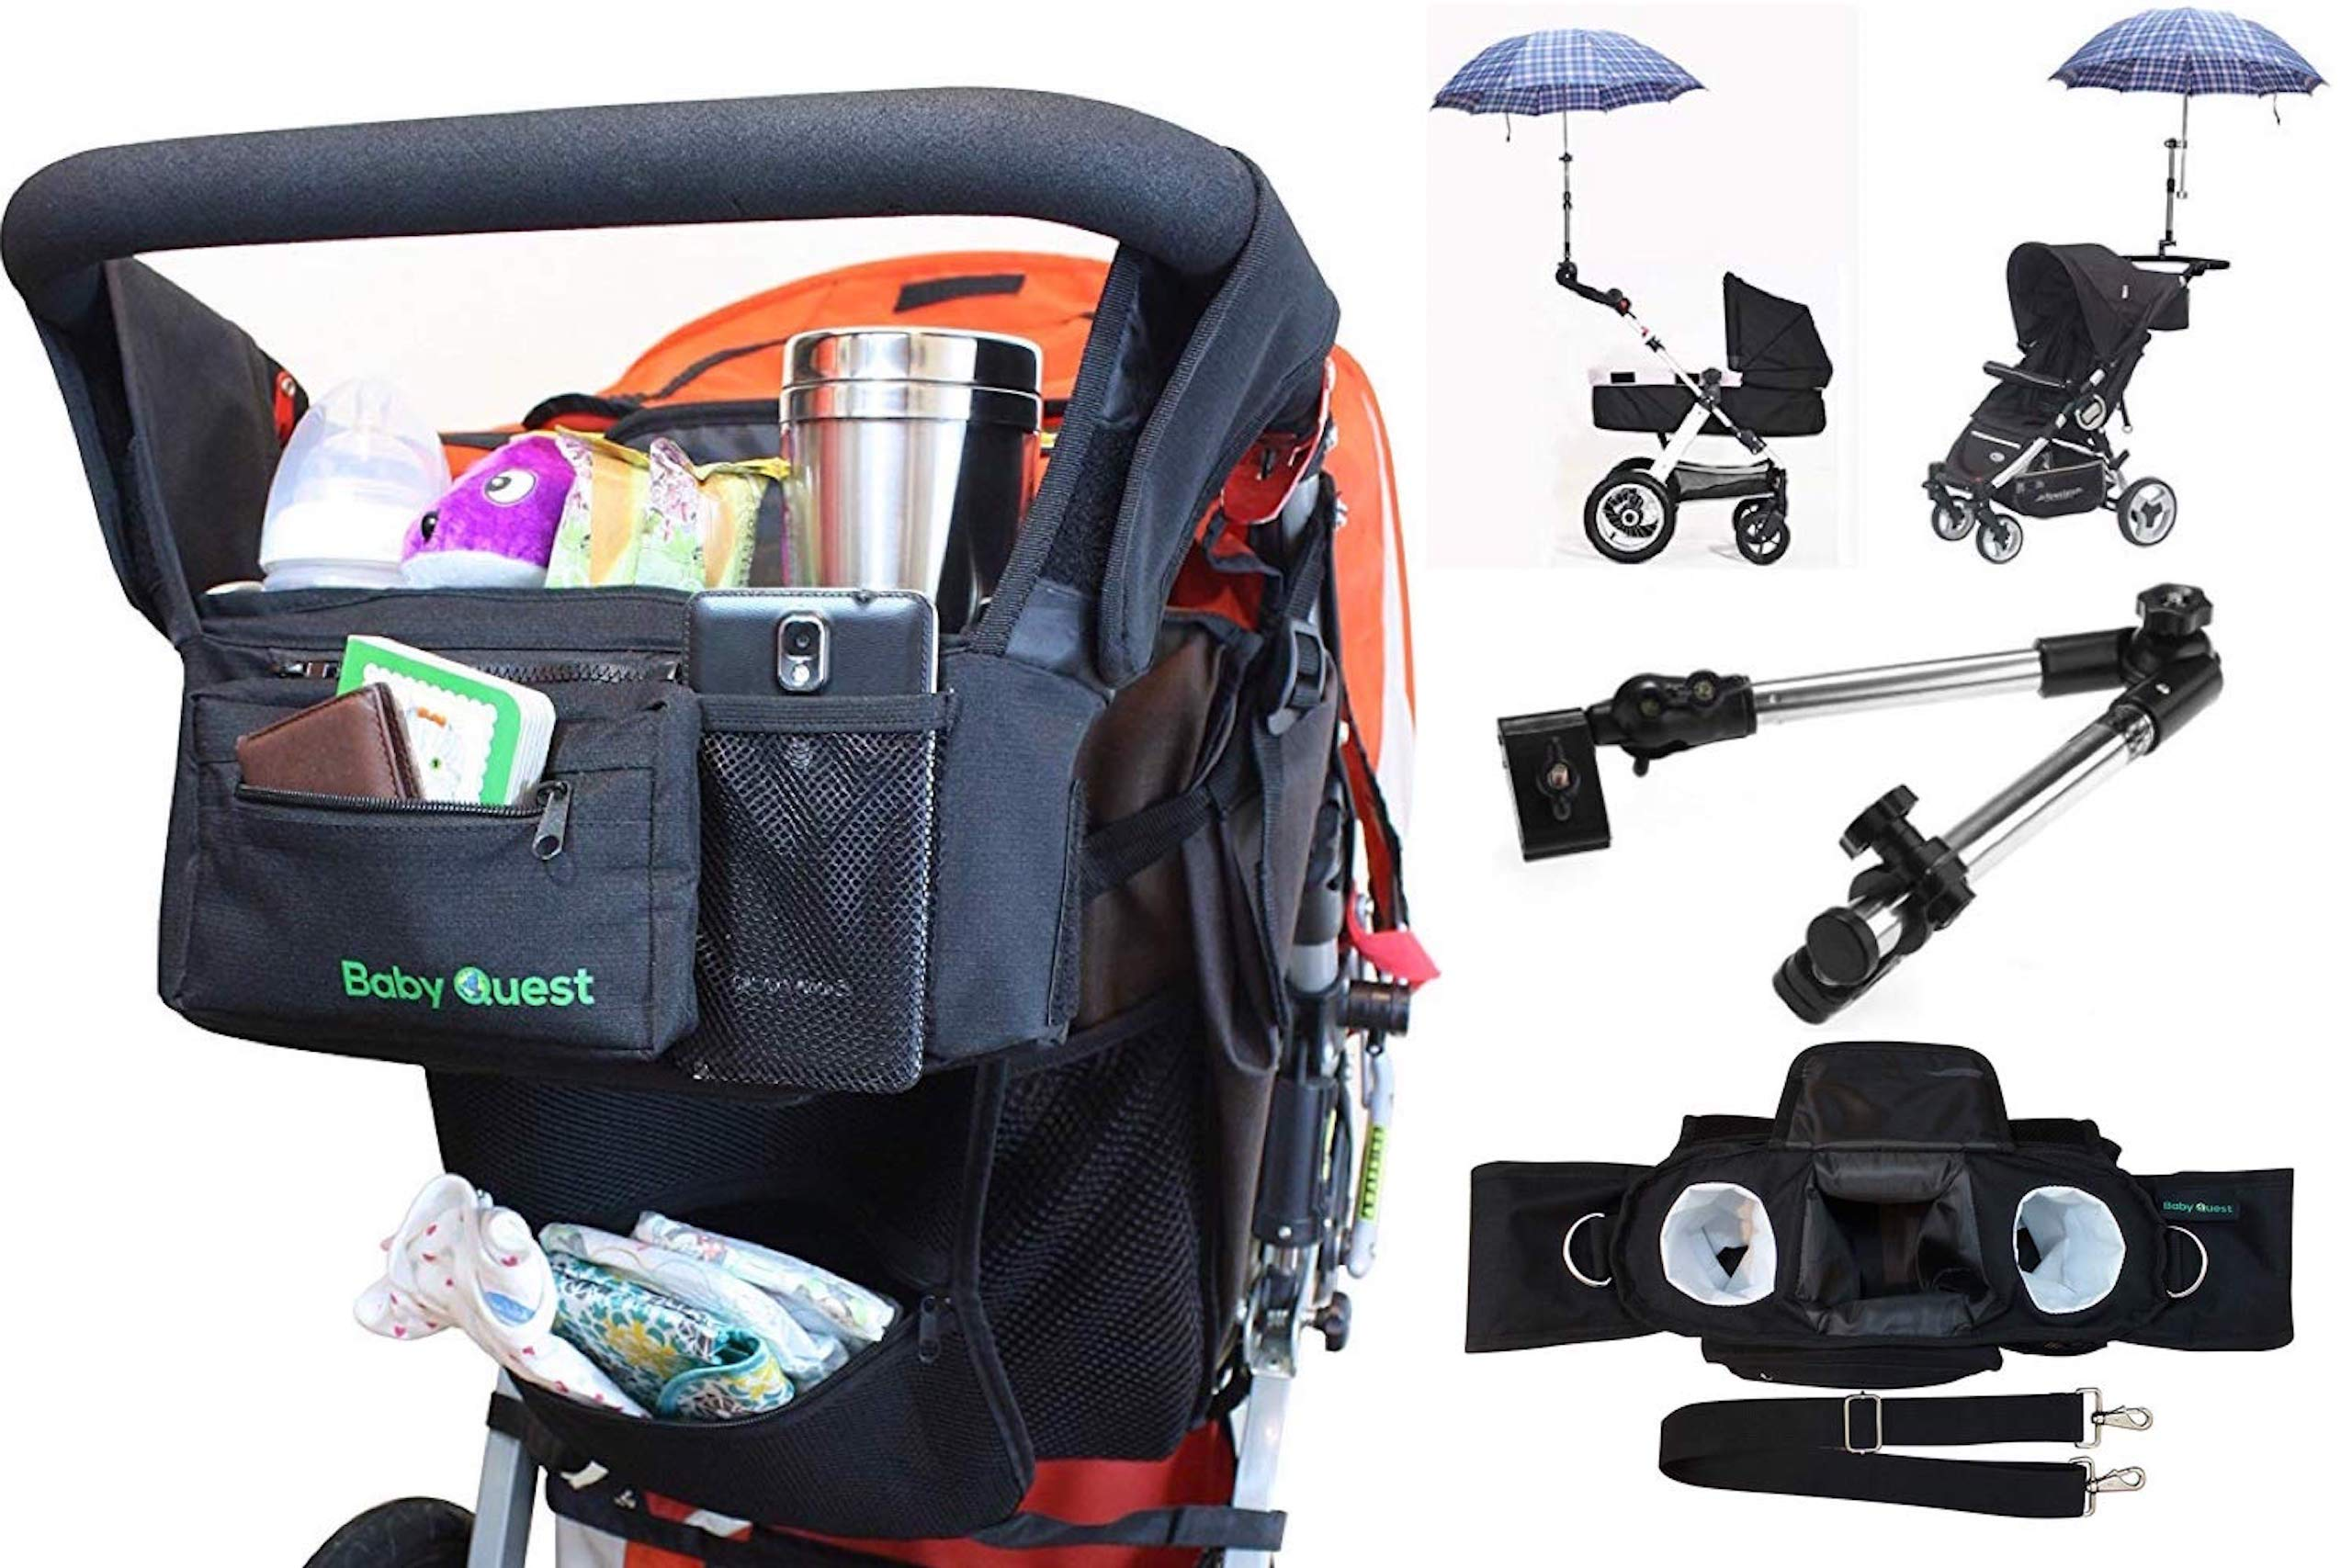 Best Universal/Double Stroller Organizer Bag with Cup Holders - Bonus Stroller Umbrella Attachment Clamp Accessory - Large Storage mesh Pouch for Small Diaper and Baby Accessories